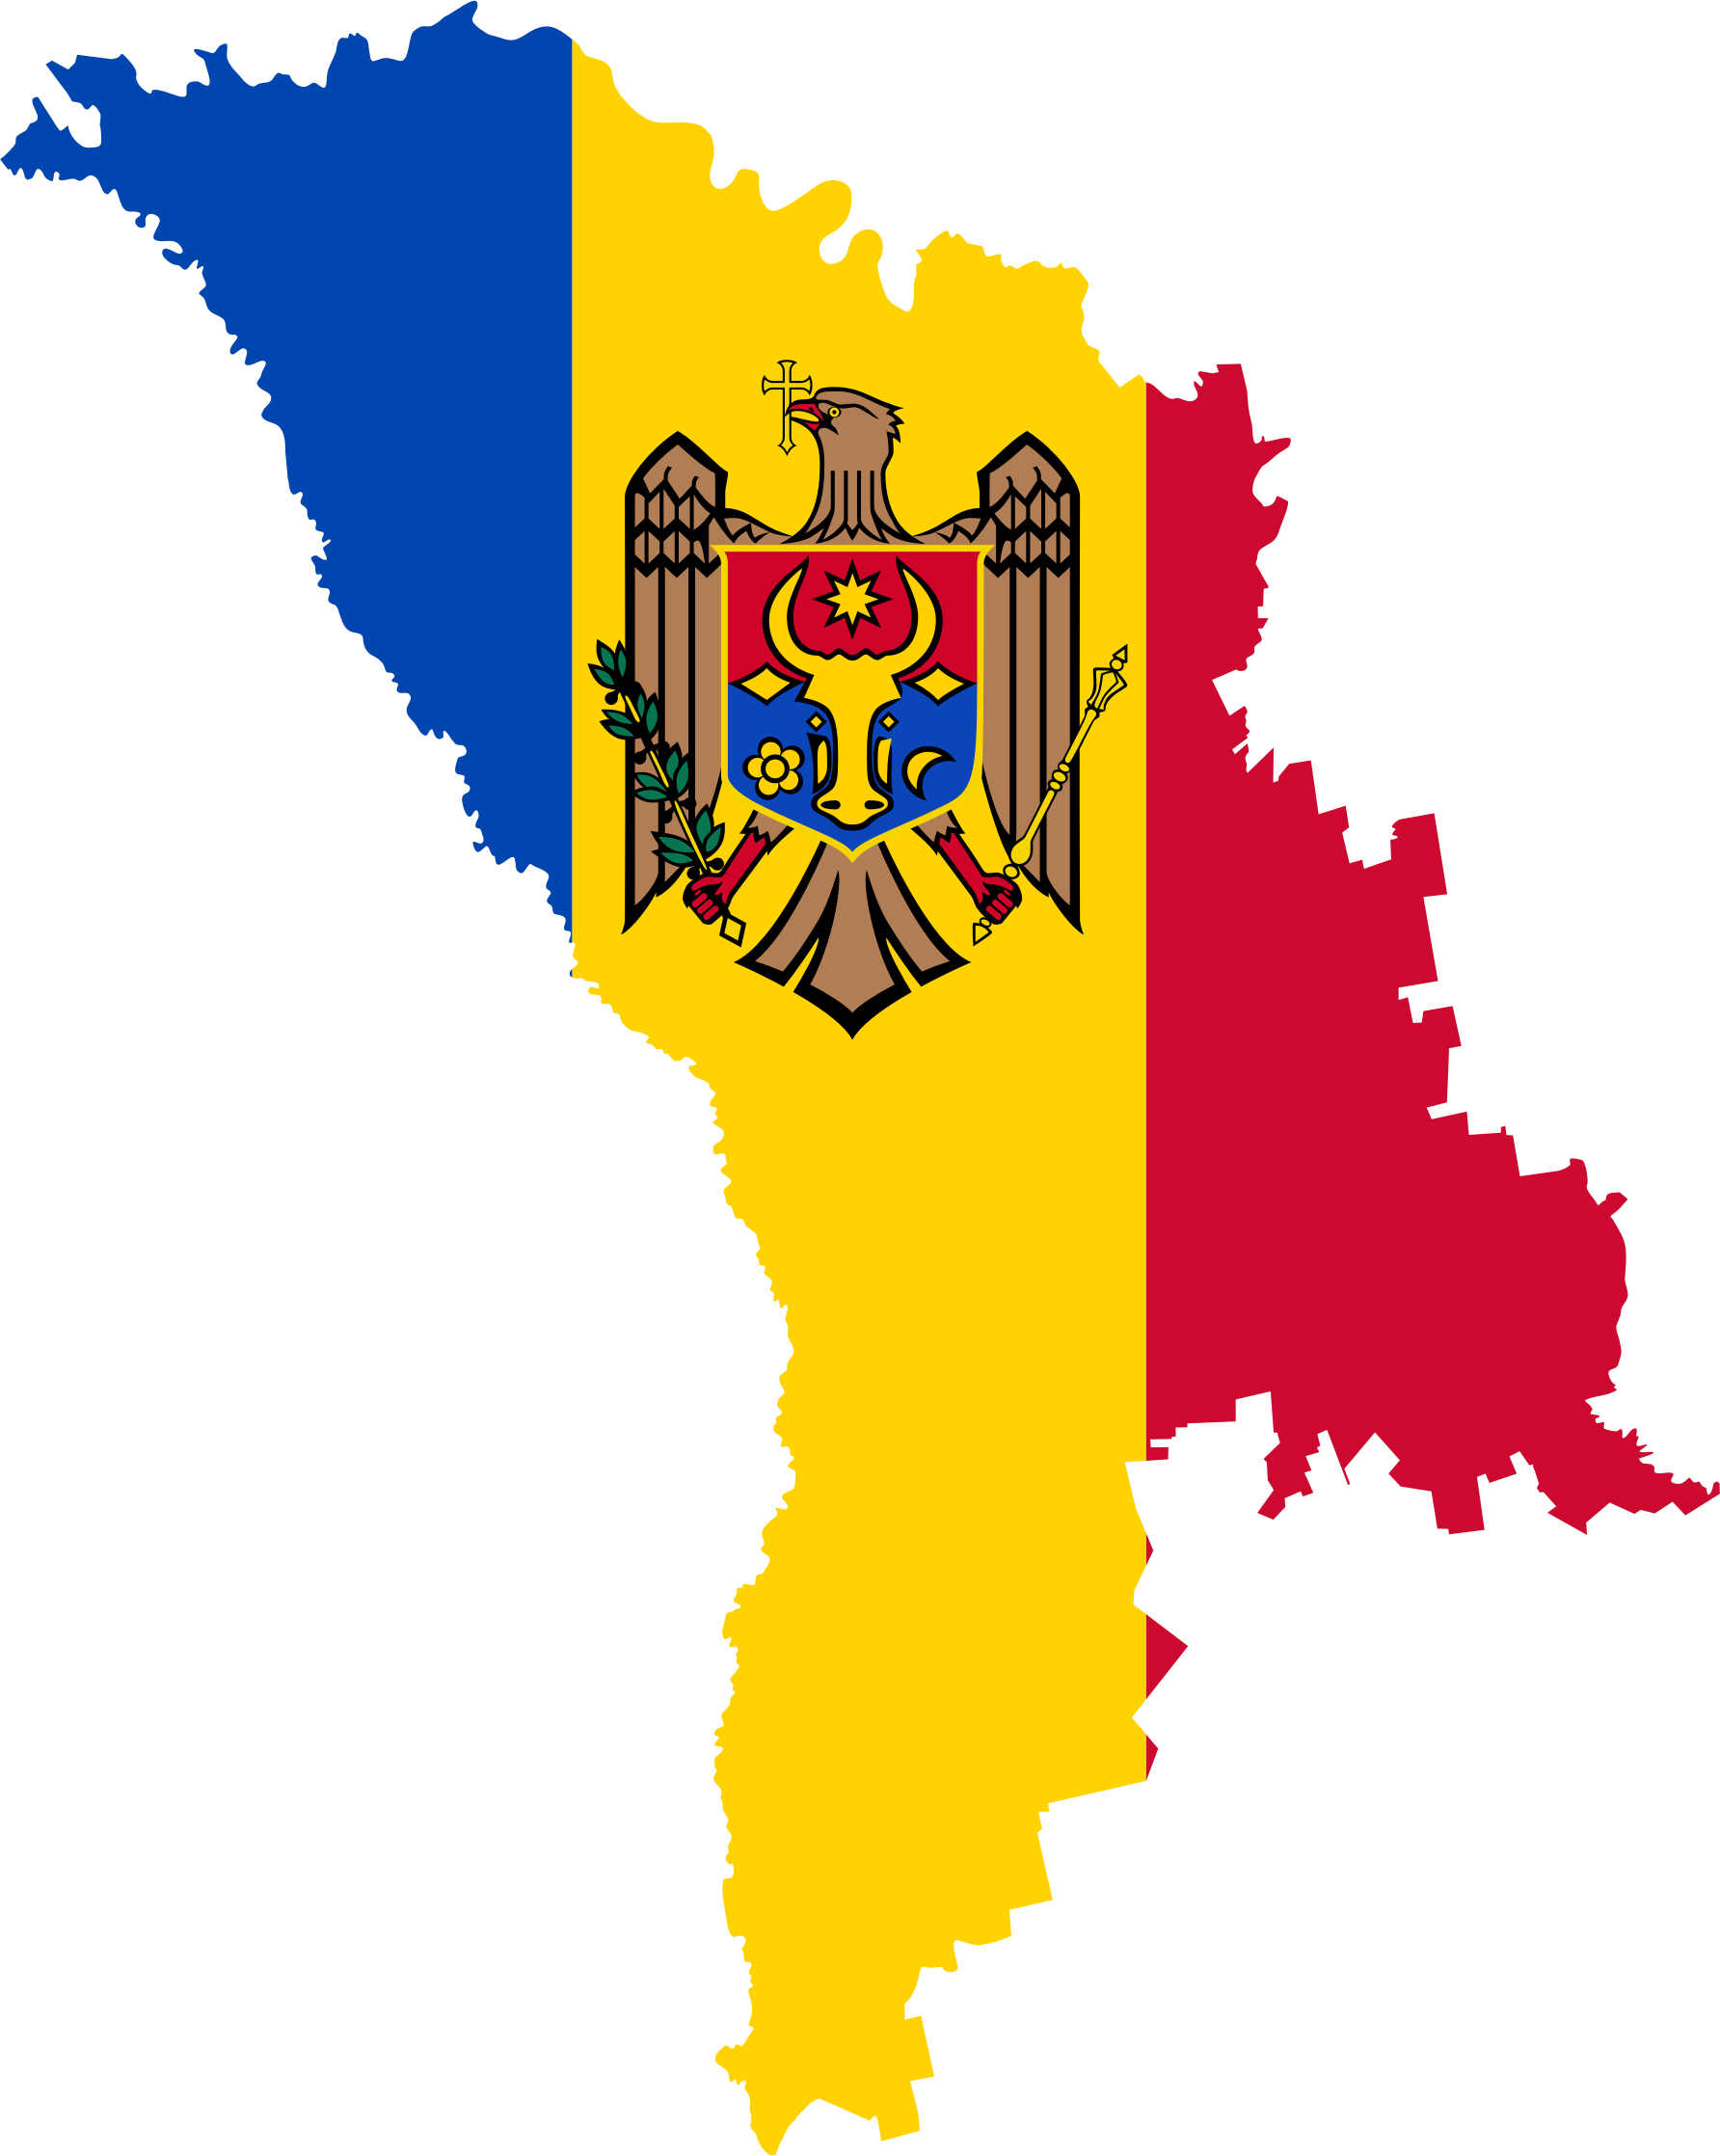 Clipart Moldova Map Flag - Moldova map